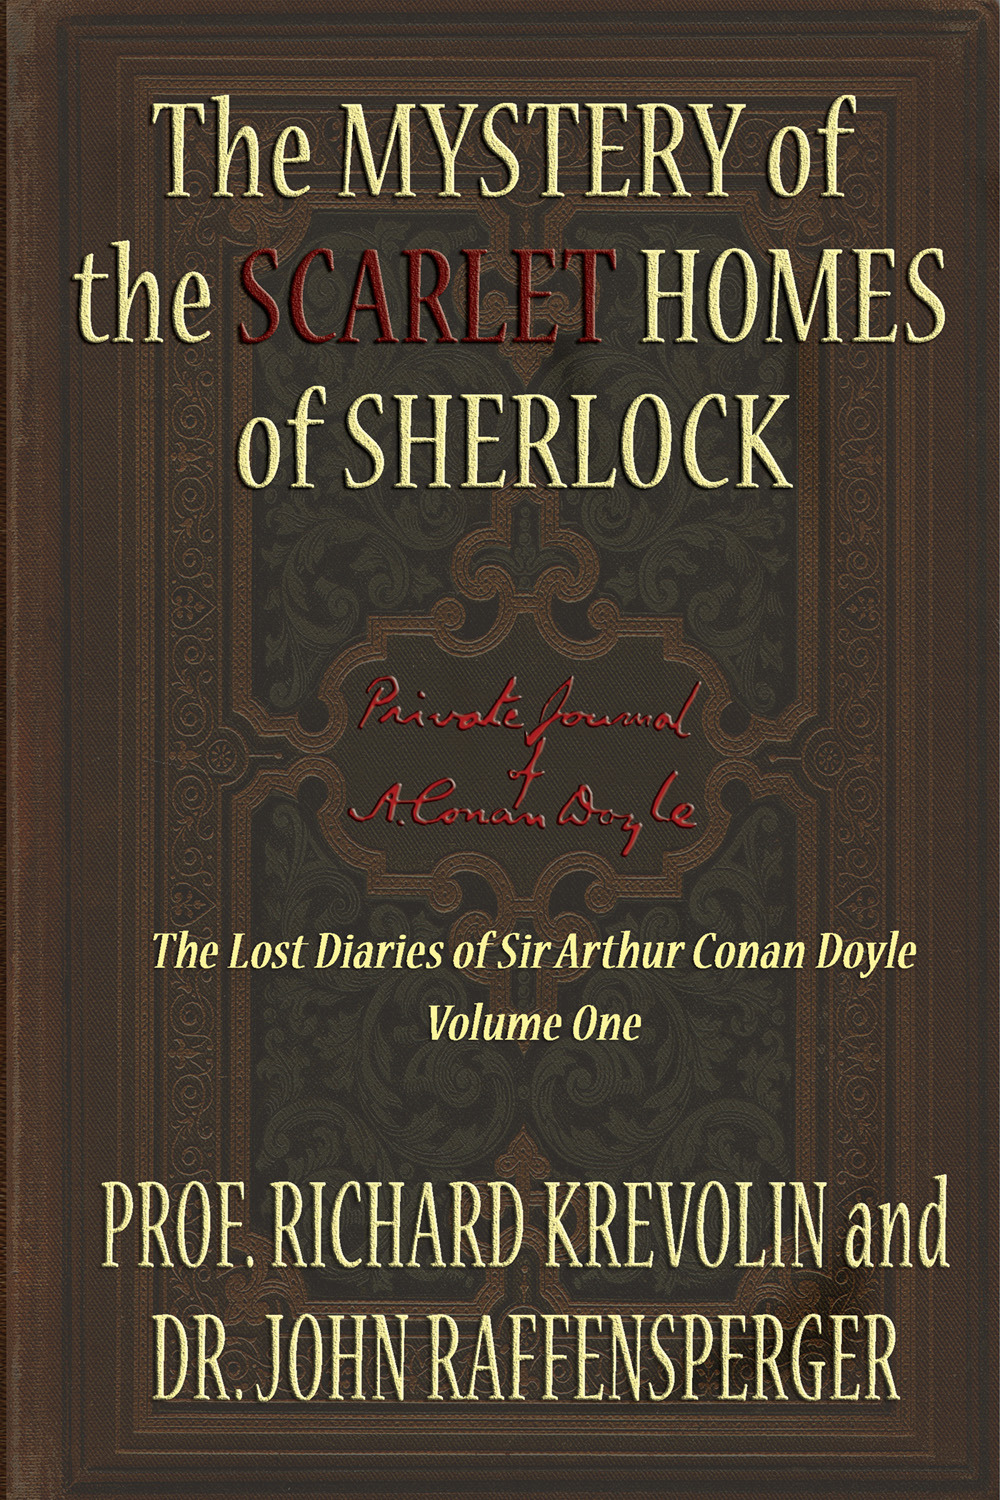 Krevolin, Prof Richard - The Mystery of the Scarlet Homes Of Sherlock, ebook